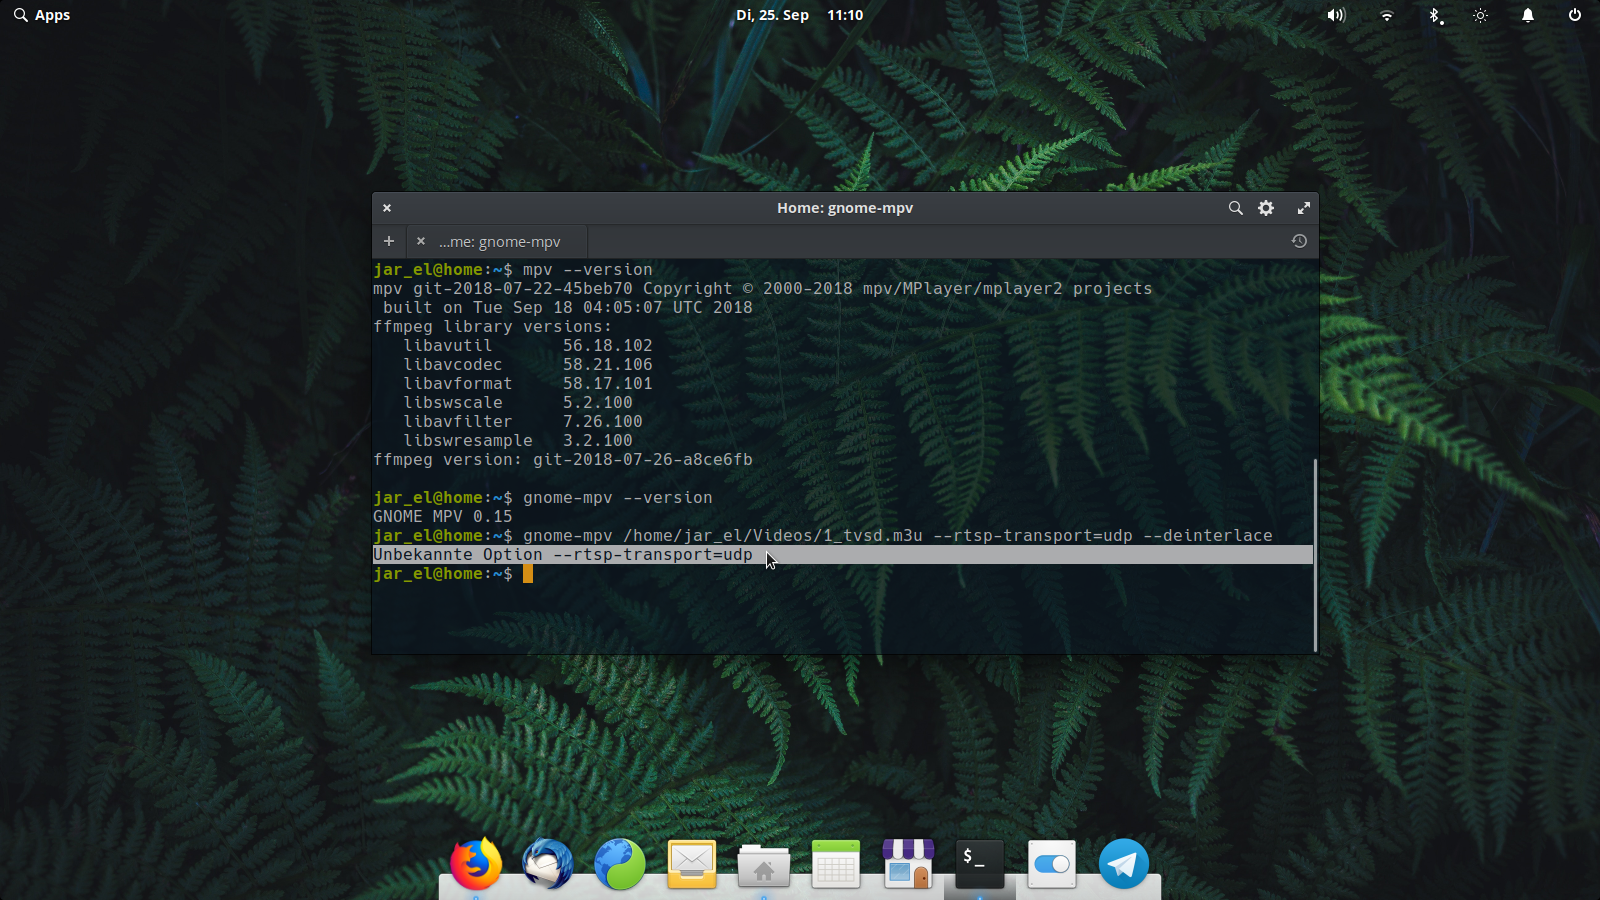 rtsp-transport=udp --deinterlace >> 'unknown option(s)' with gnome